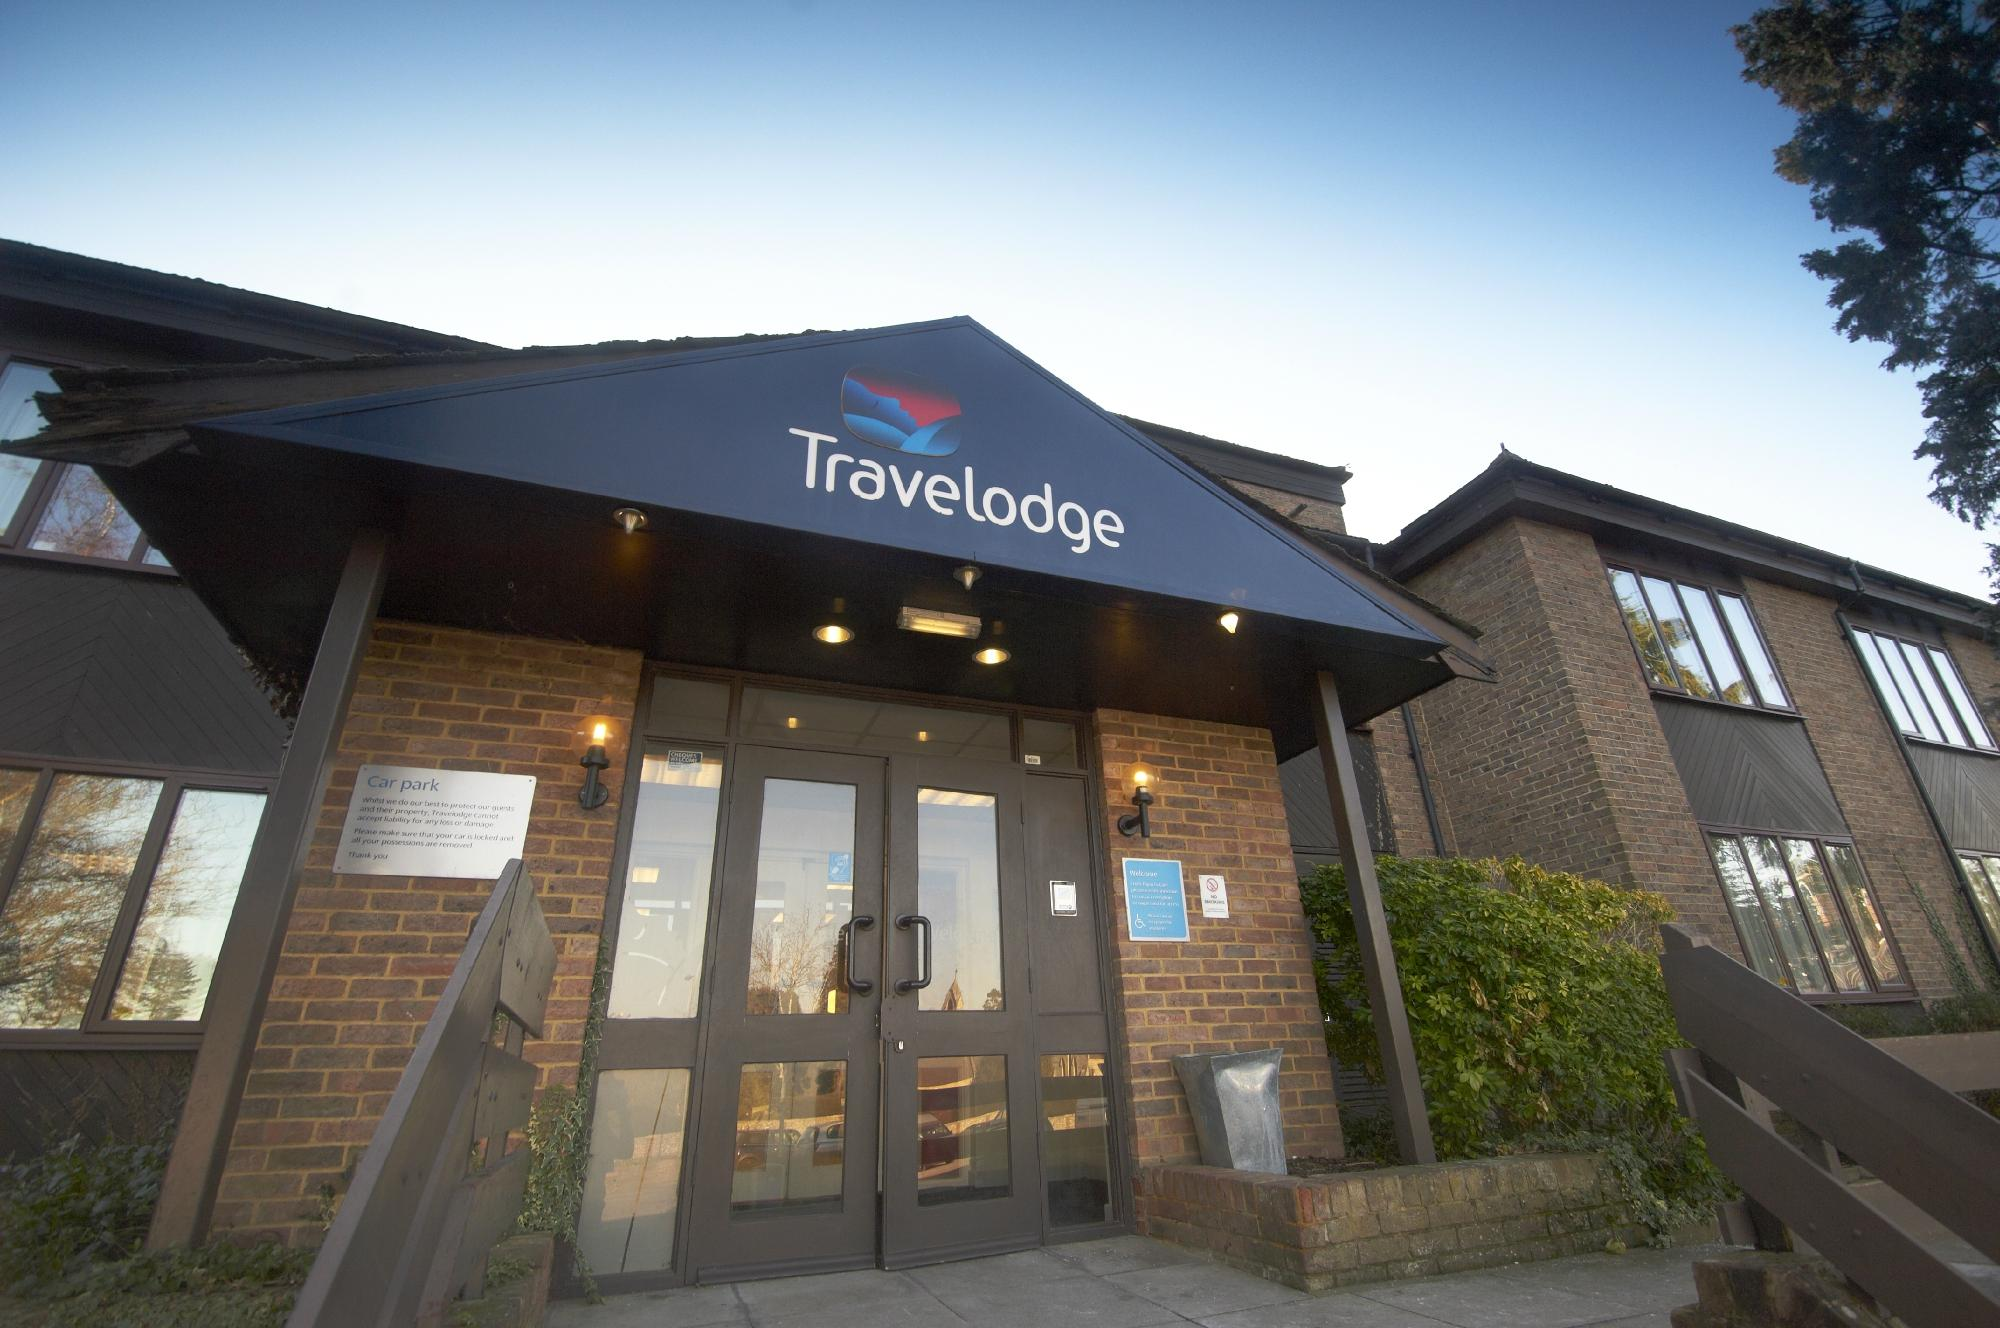 Travelodge Dorking